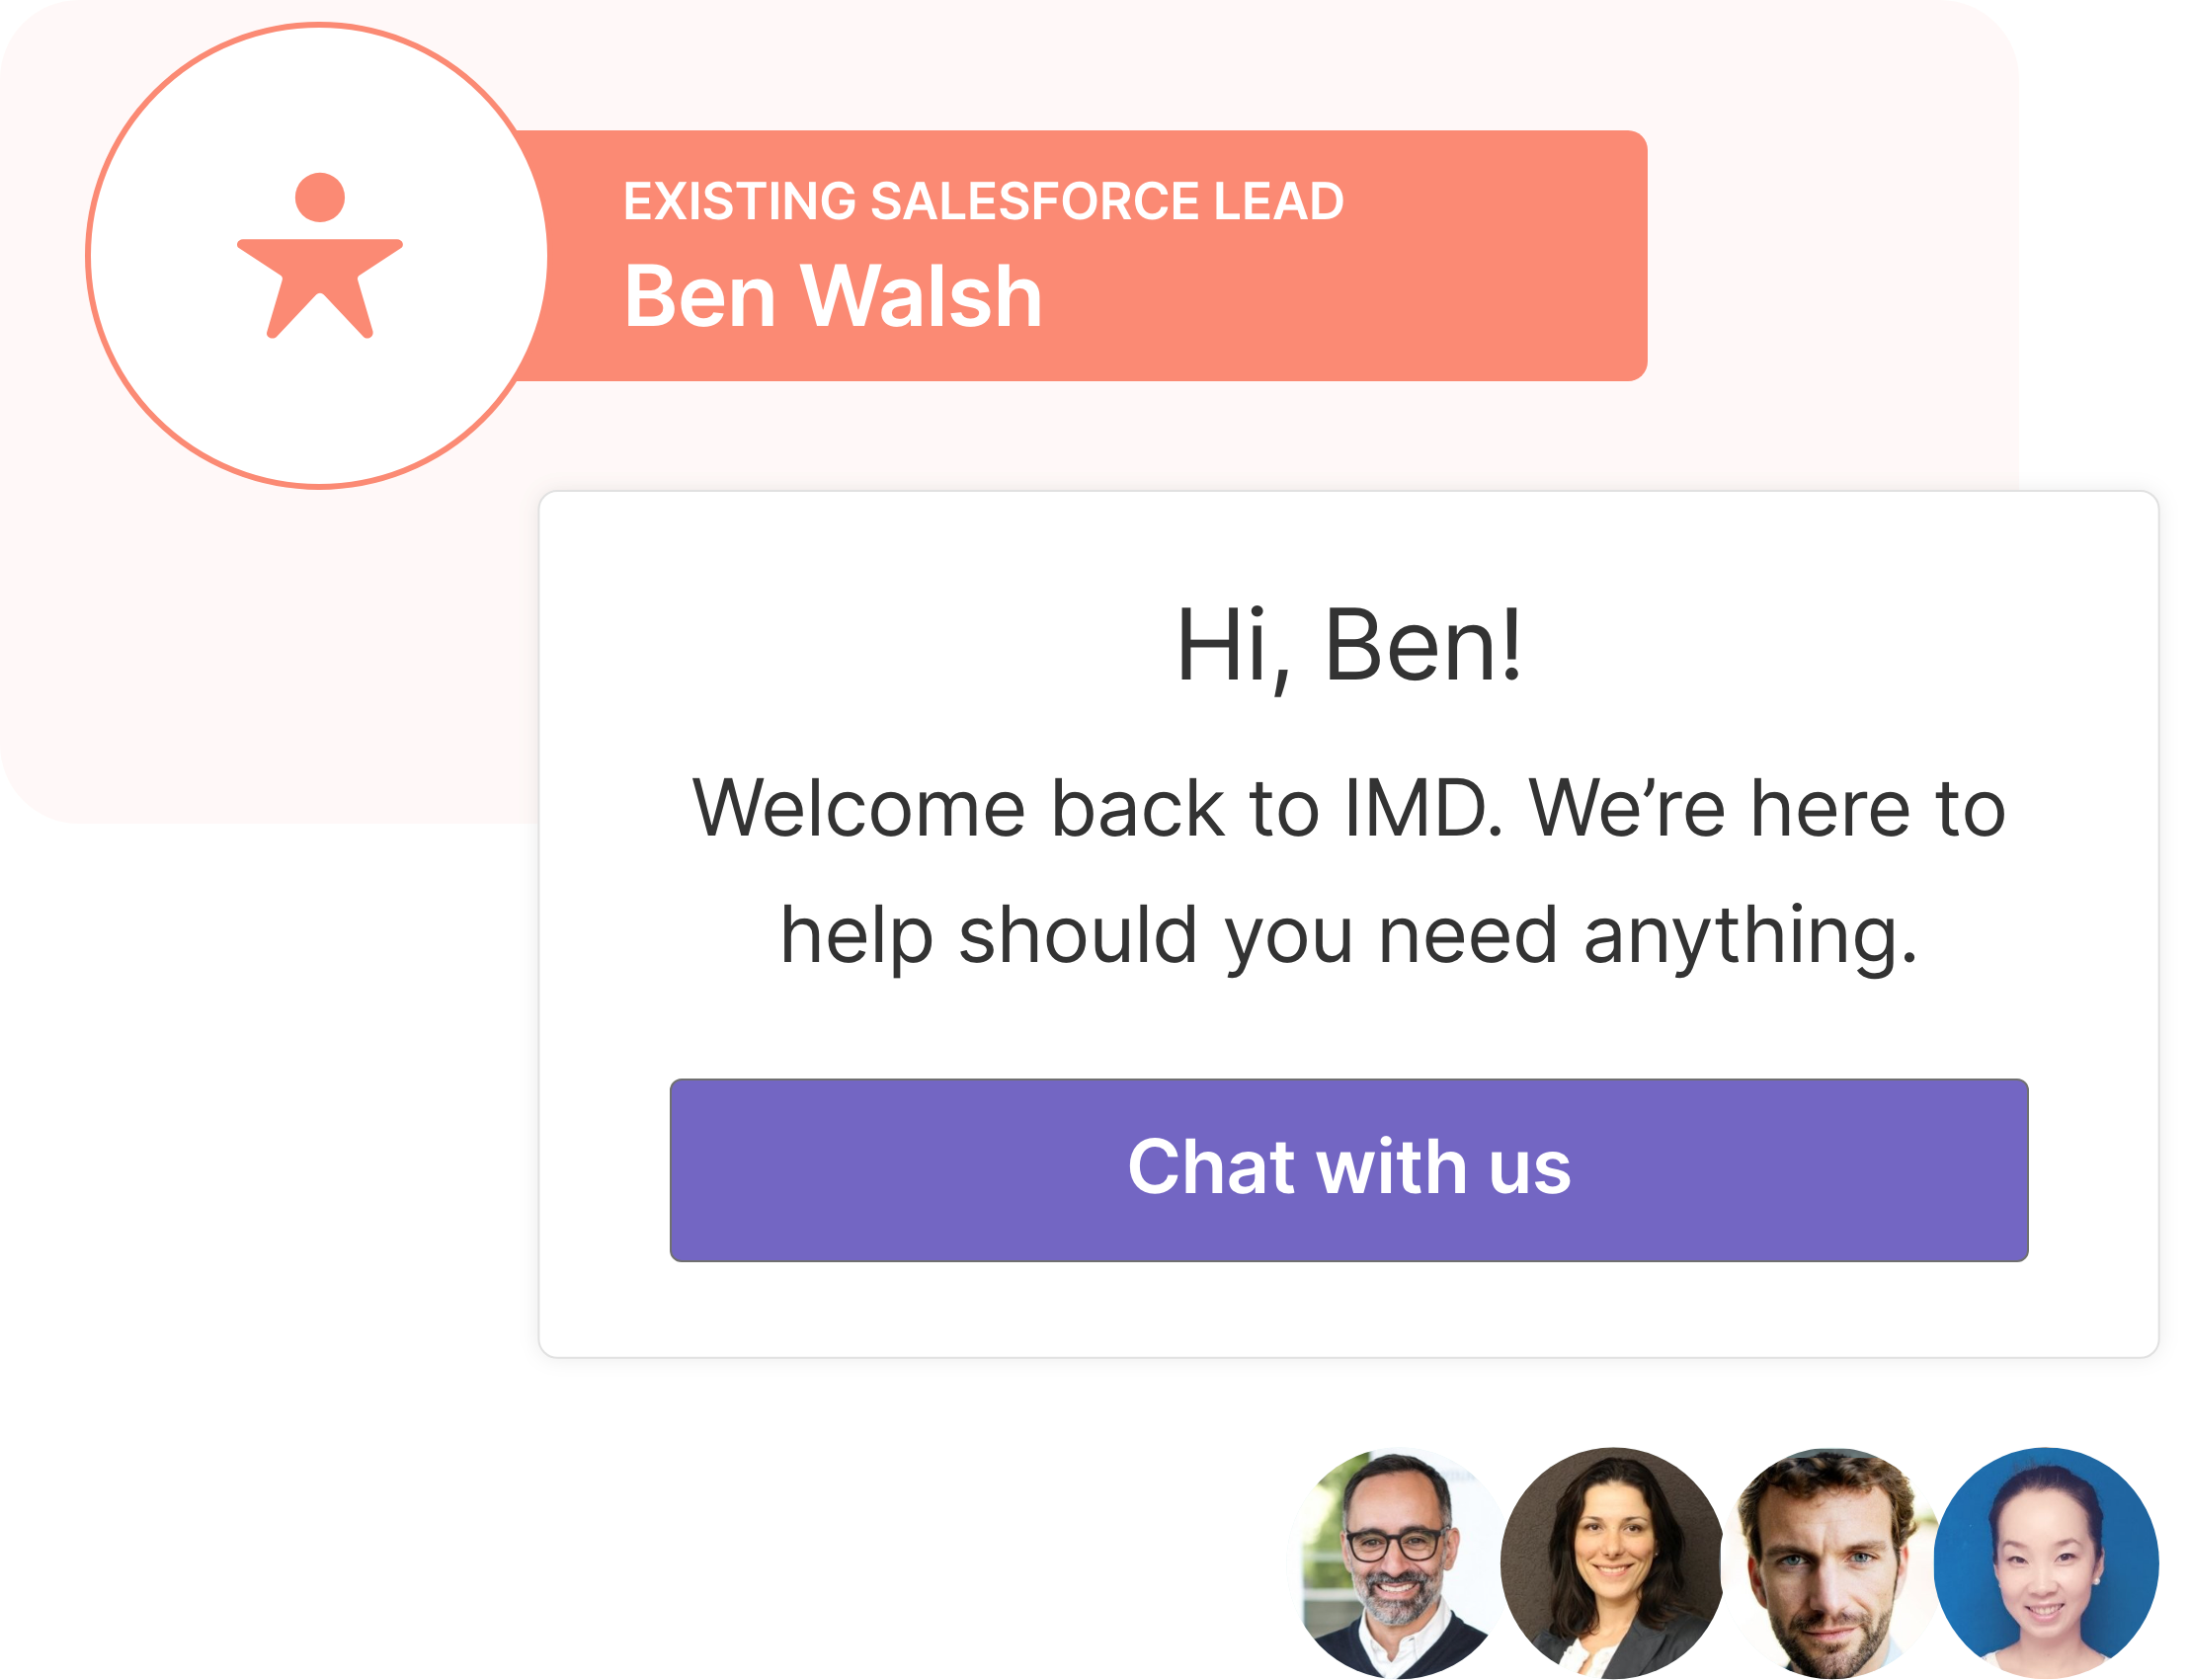 IMD automatically invites known Salesforce leads and contacts to meet with their sales team